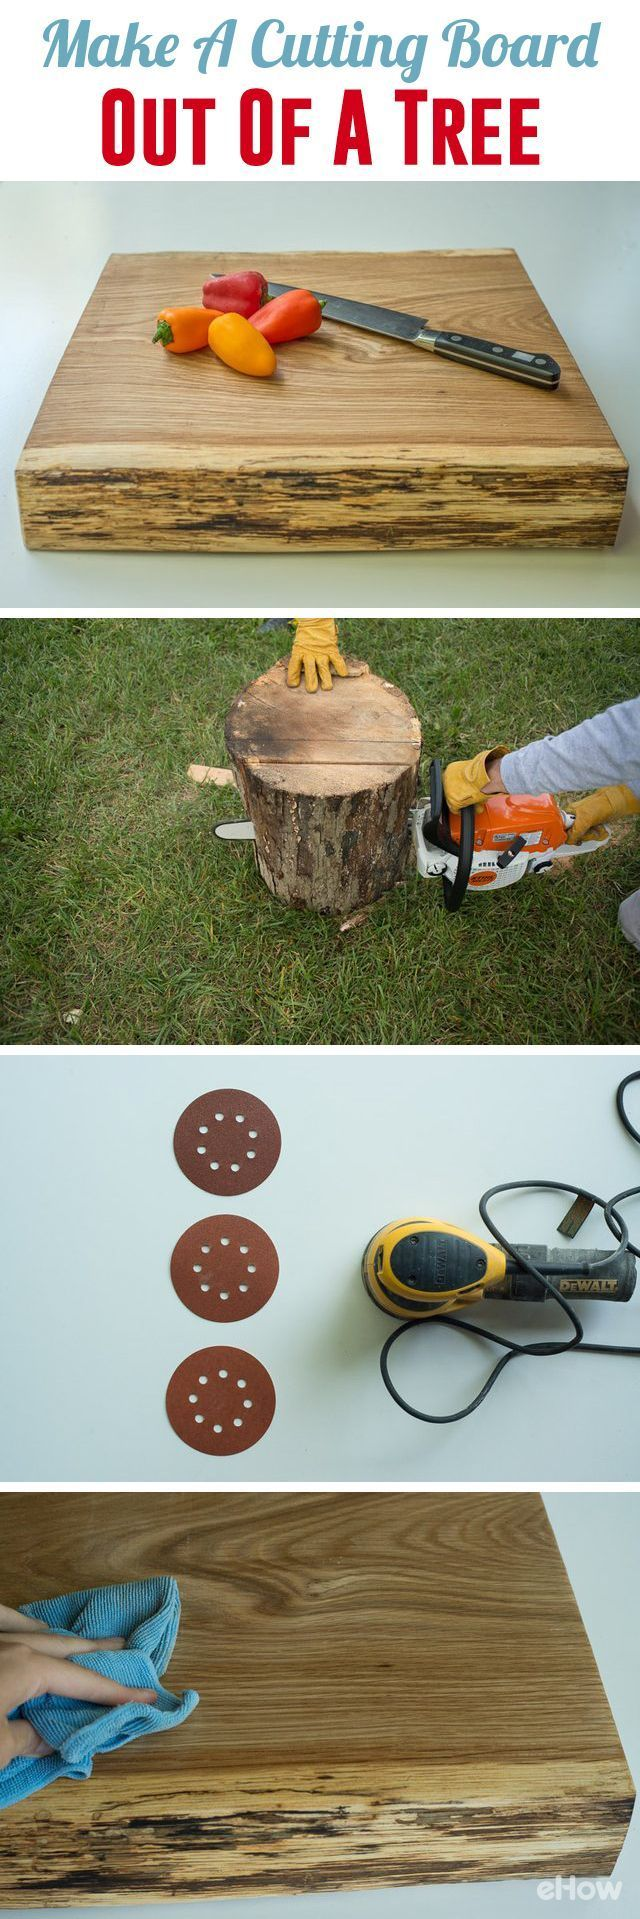 DIY your own custom cutting board out of a tree trunk!